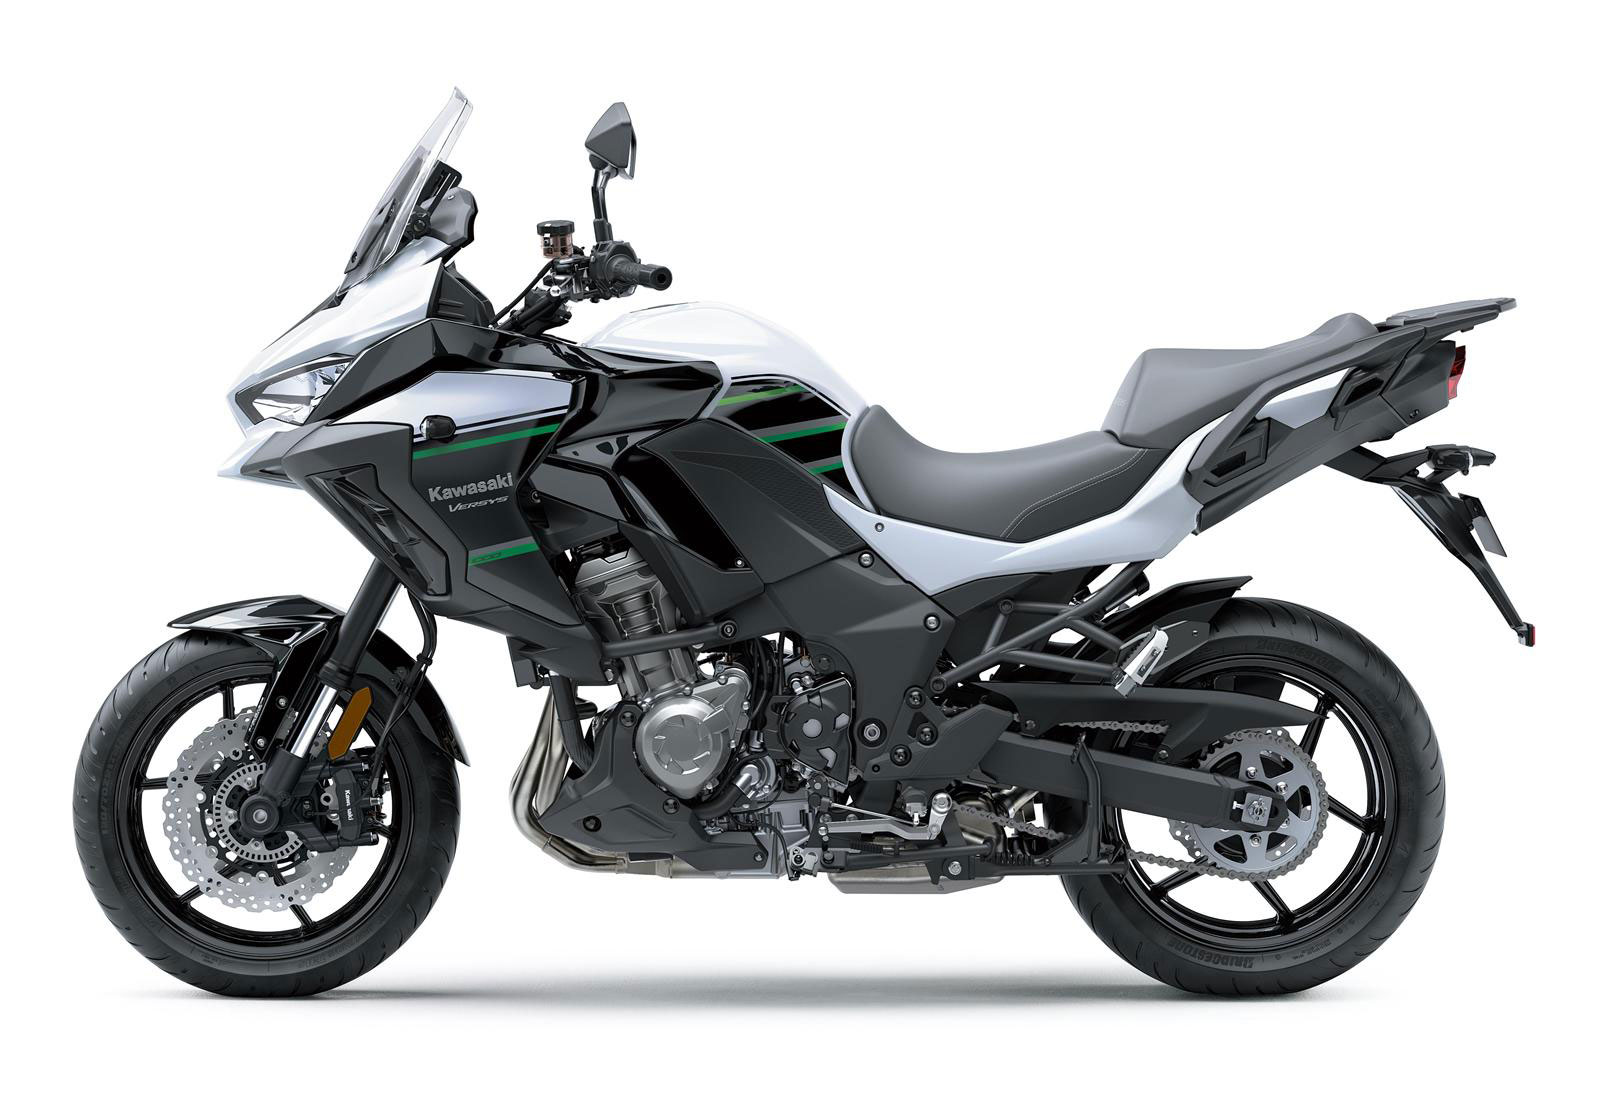 2019 kawasaki versys 1000 guide totalmotorcycle. Black Bedroom Furniture Sets. Home Design Ideas